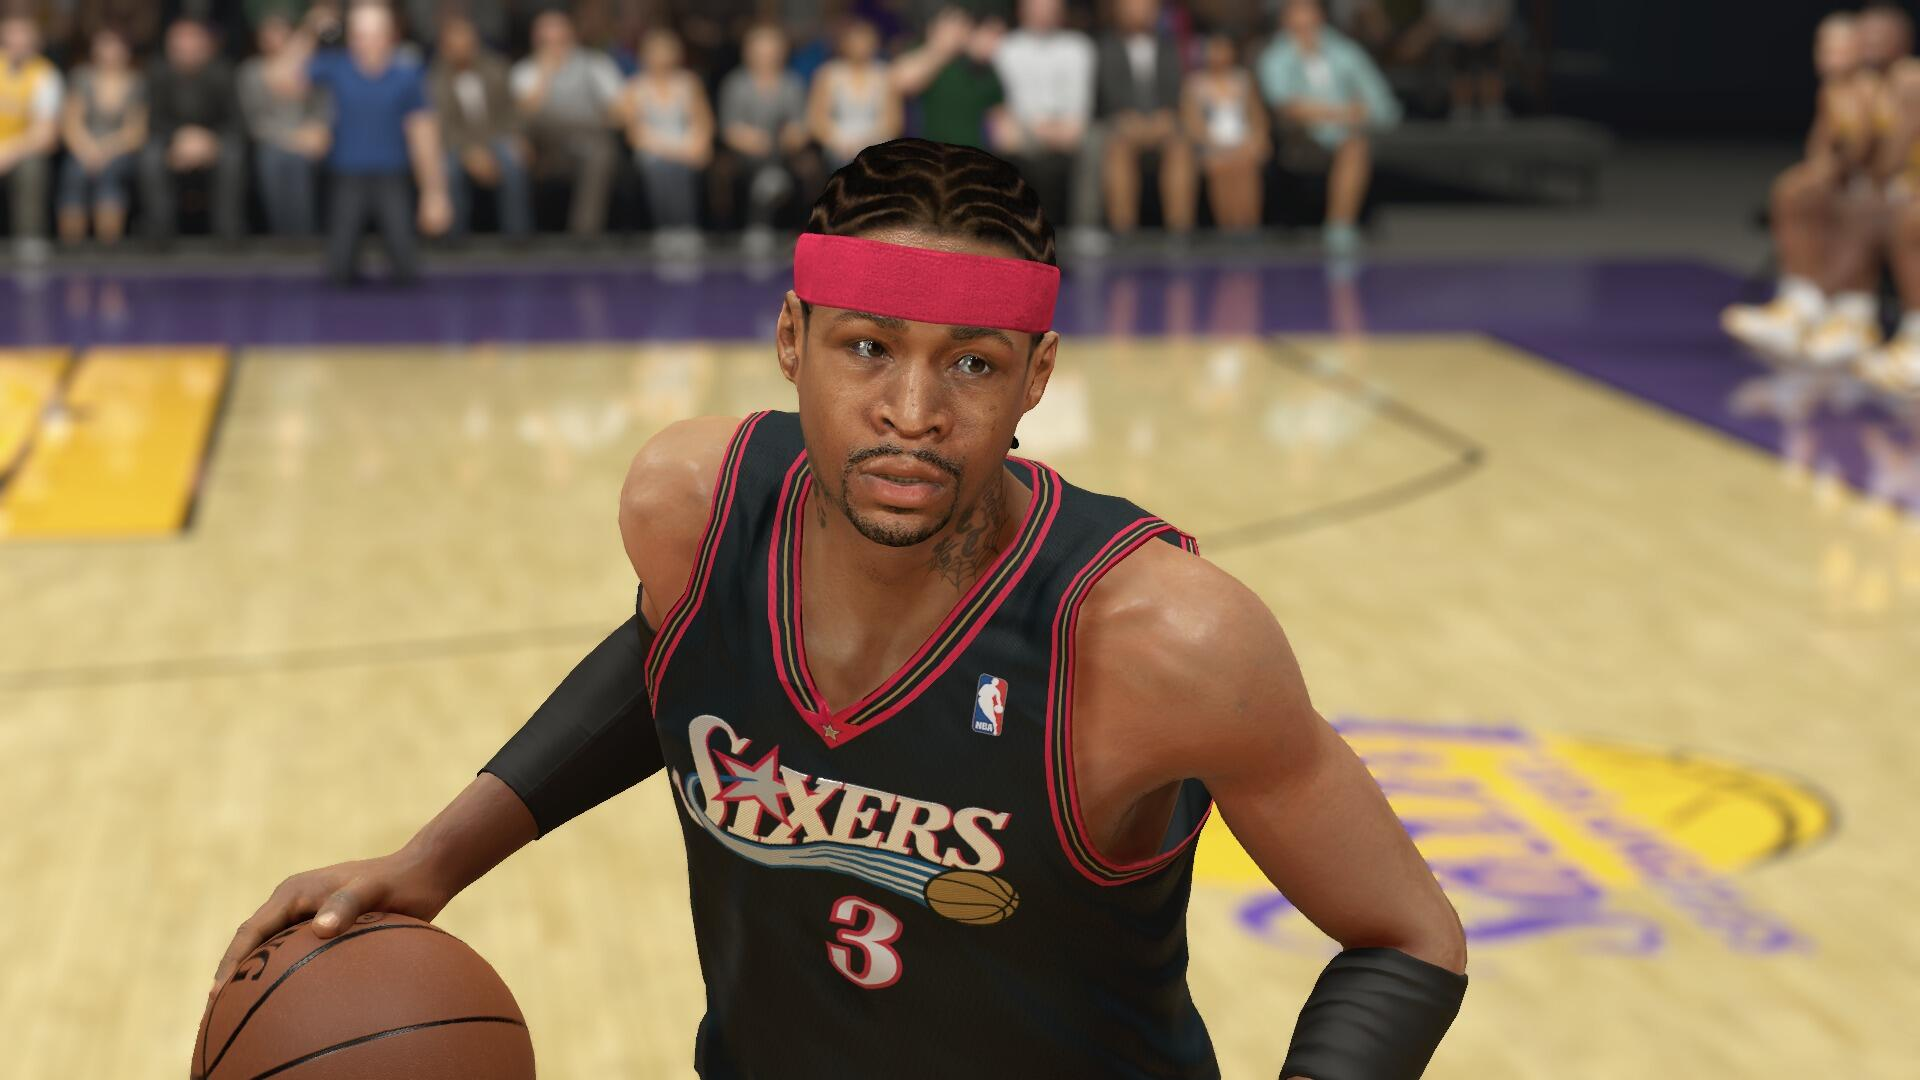 Allen Iverson in next-gen #NBA2K14 #Sixers http://t.co/43hoJ3f6td